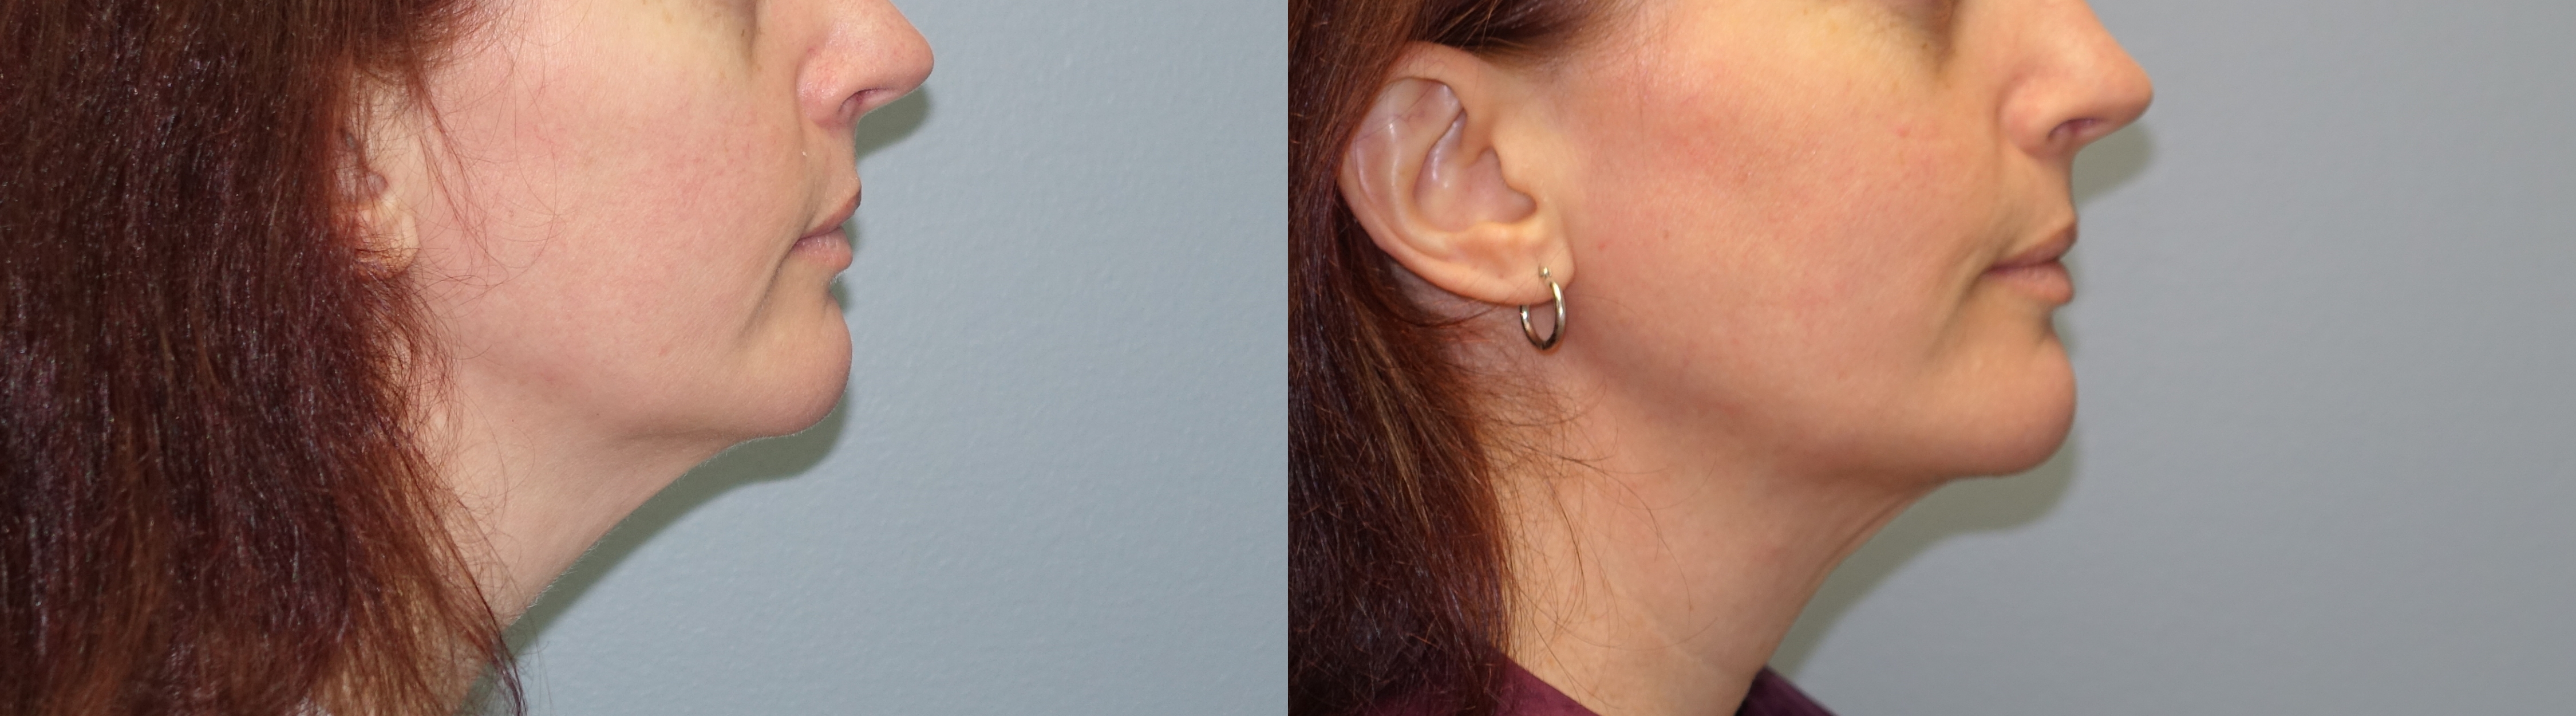 Thermitight and lipo of neck